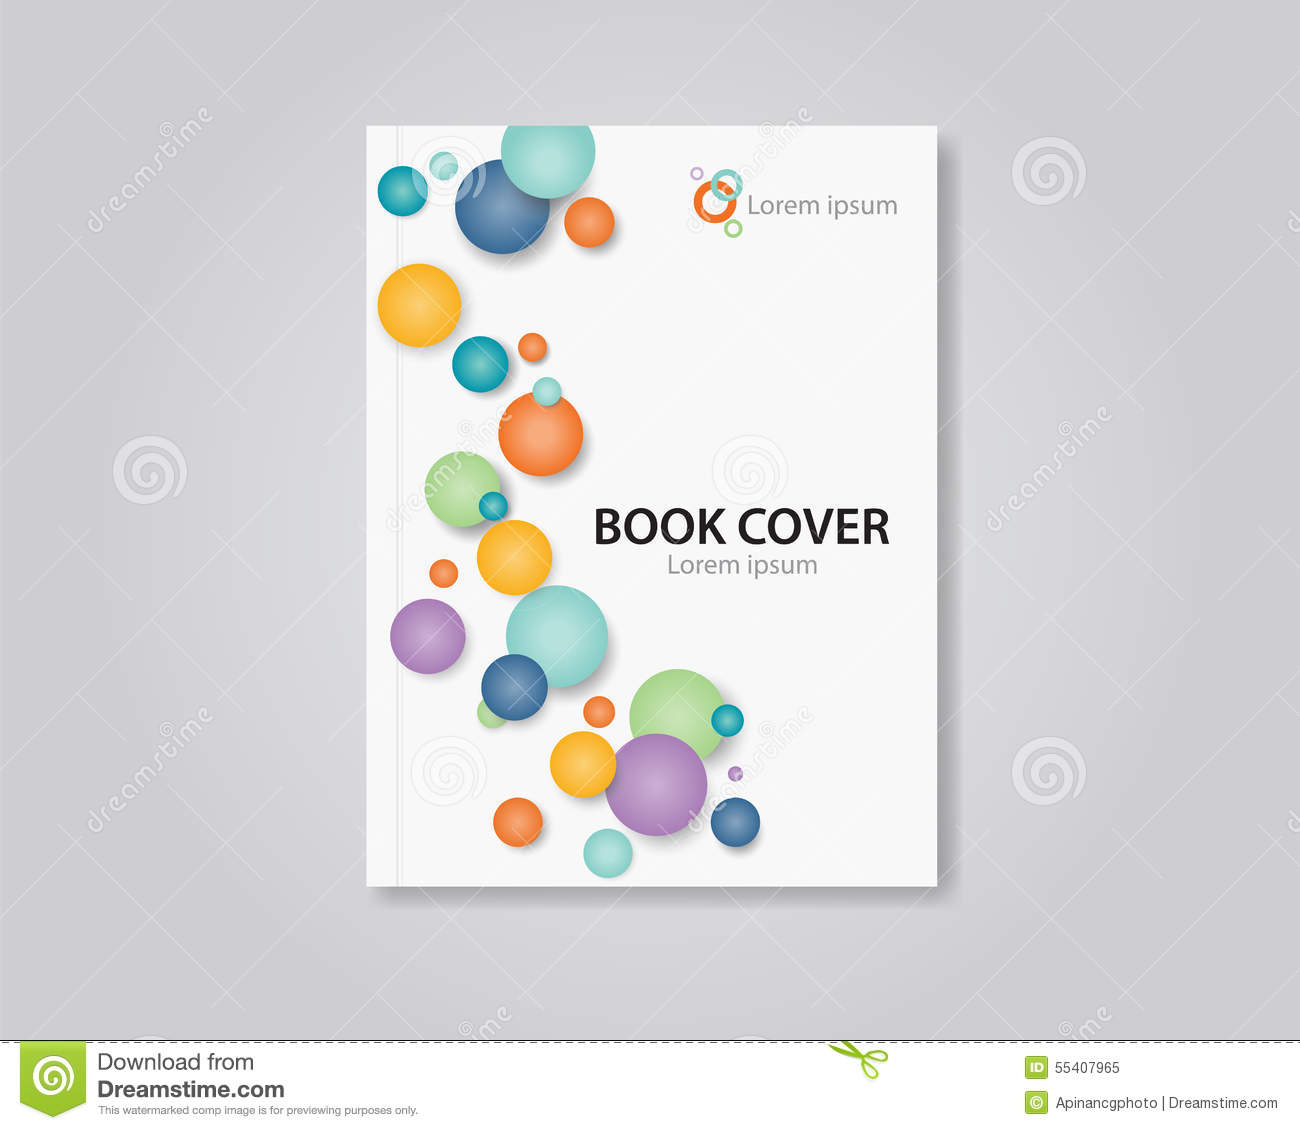 Book Cover Design Cdr ~ Abstract book and brochure cover template design editable